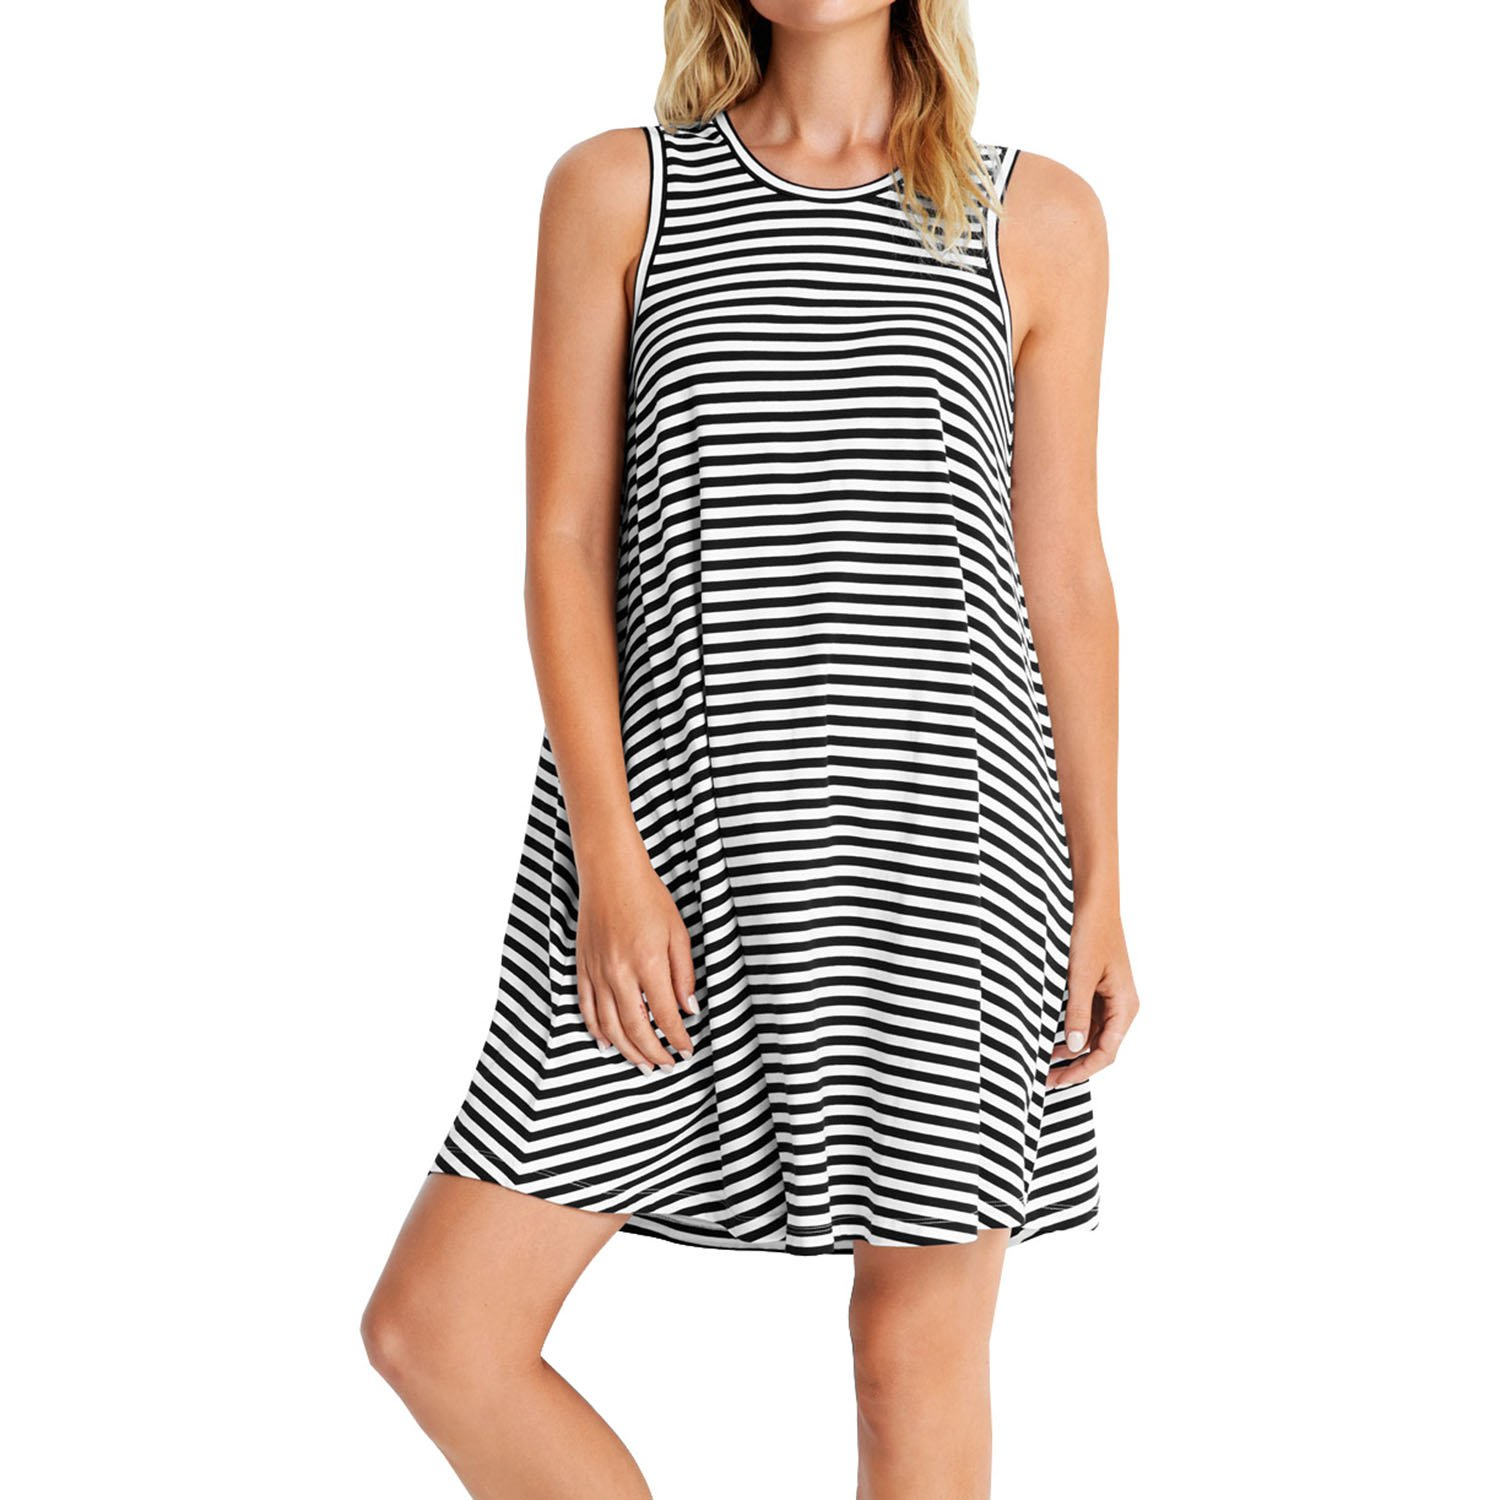 Seafolly Women's Indian Summer Mini Stripe Swing Jersey Dress Cover-Up Black Swimsuit Top